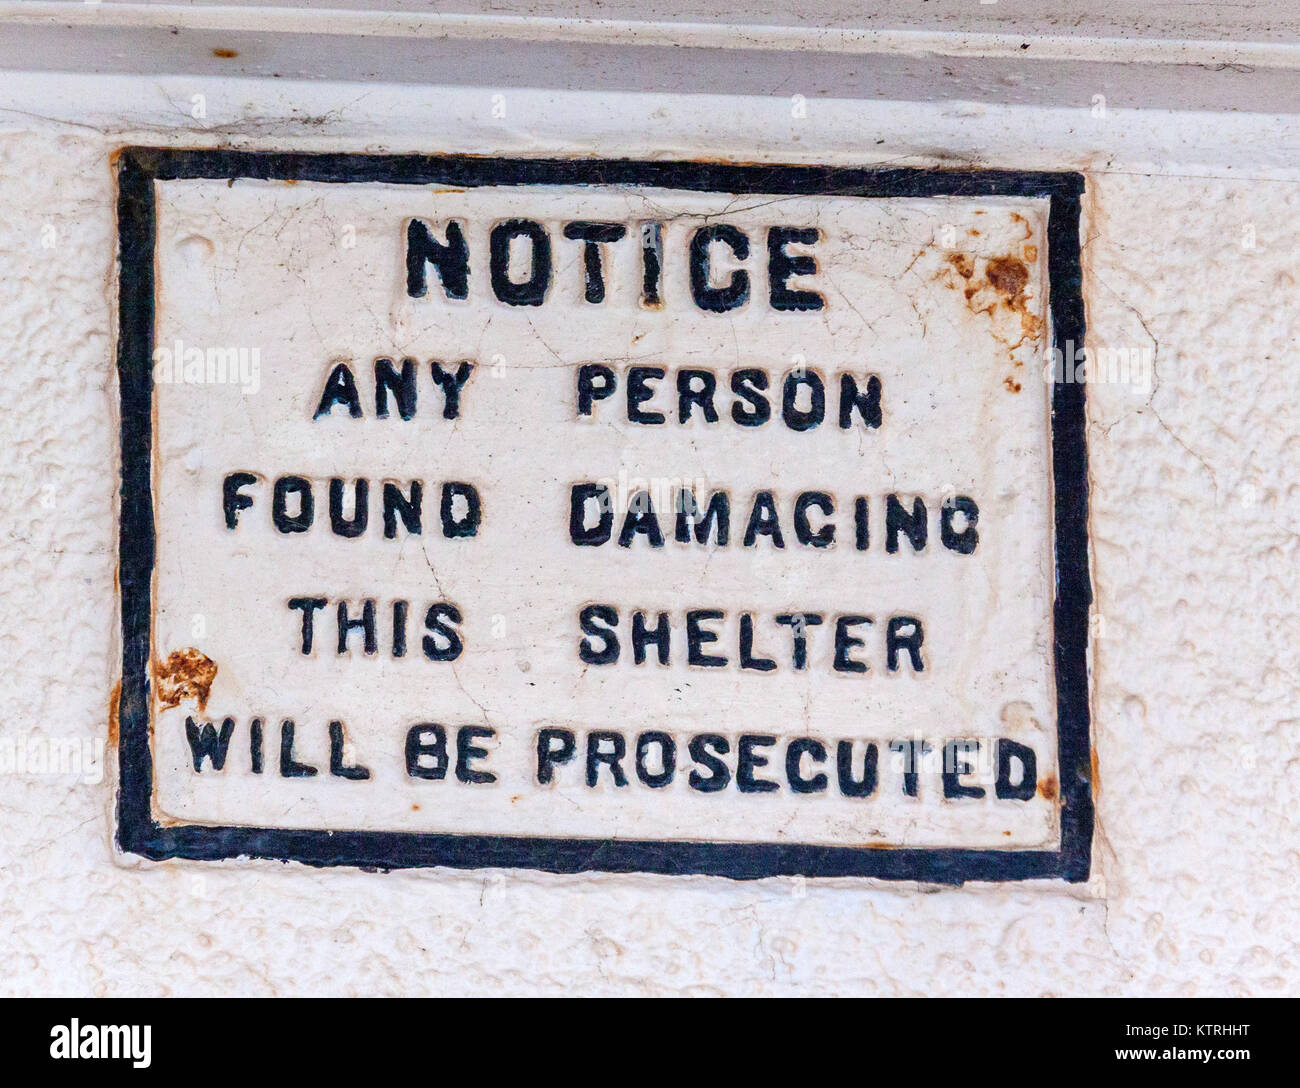 Old rusty warning sign - Notice any person found damaging this shelter will be prosecuted. - Stock Image